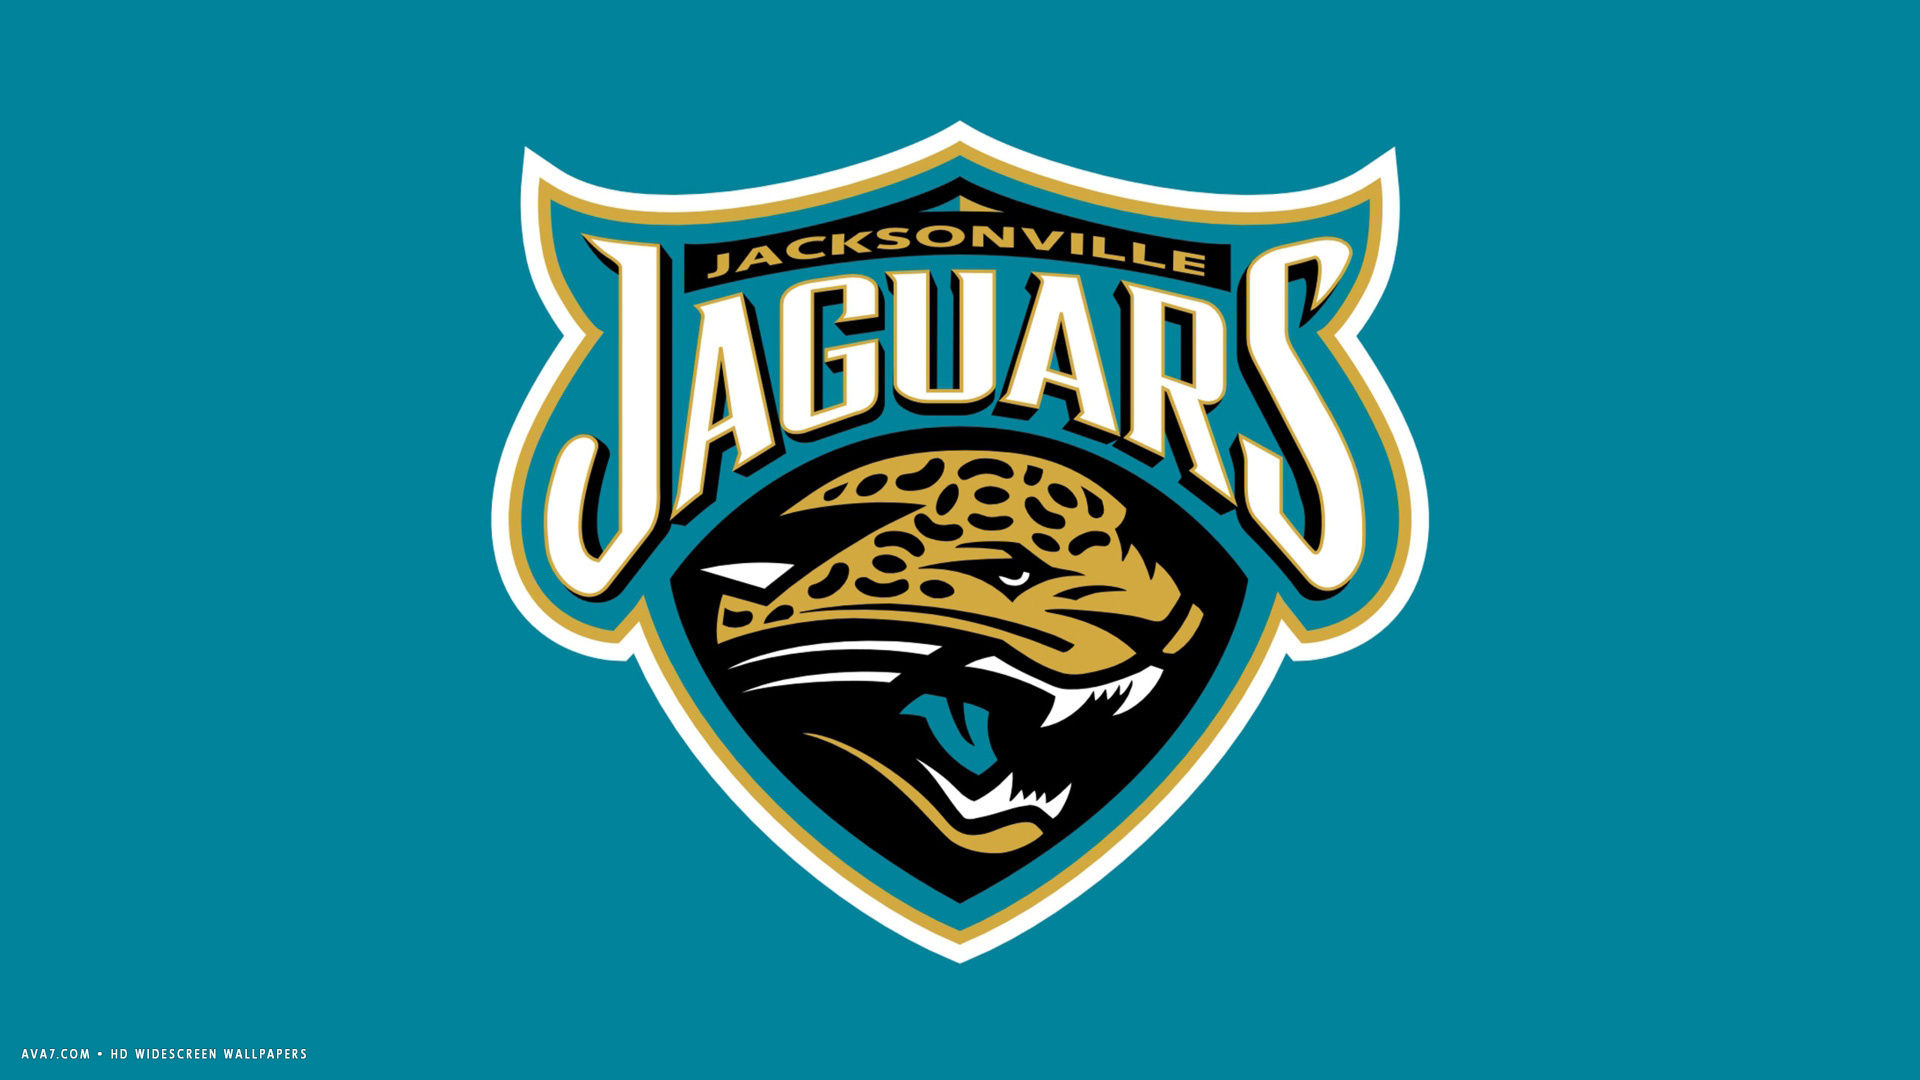 jacksonville jaguars nfl football team hd widescreen wallpaper 1920x1080